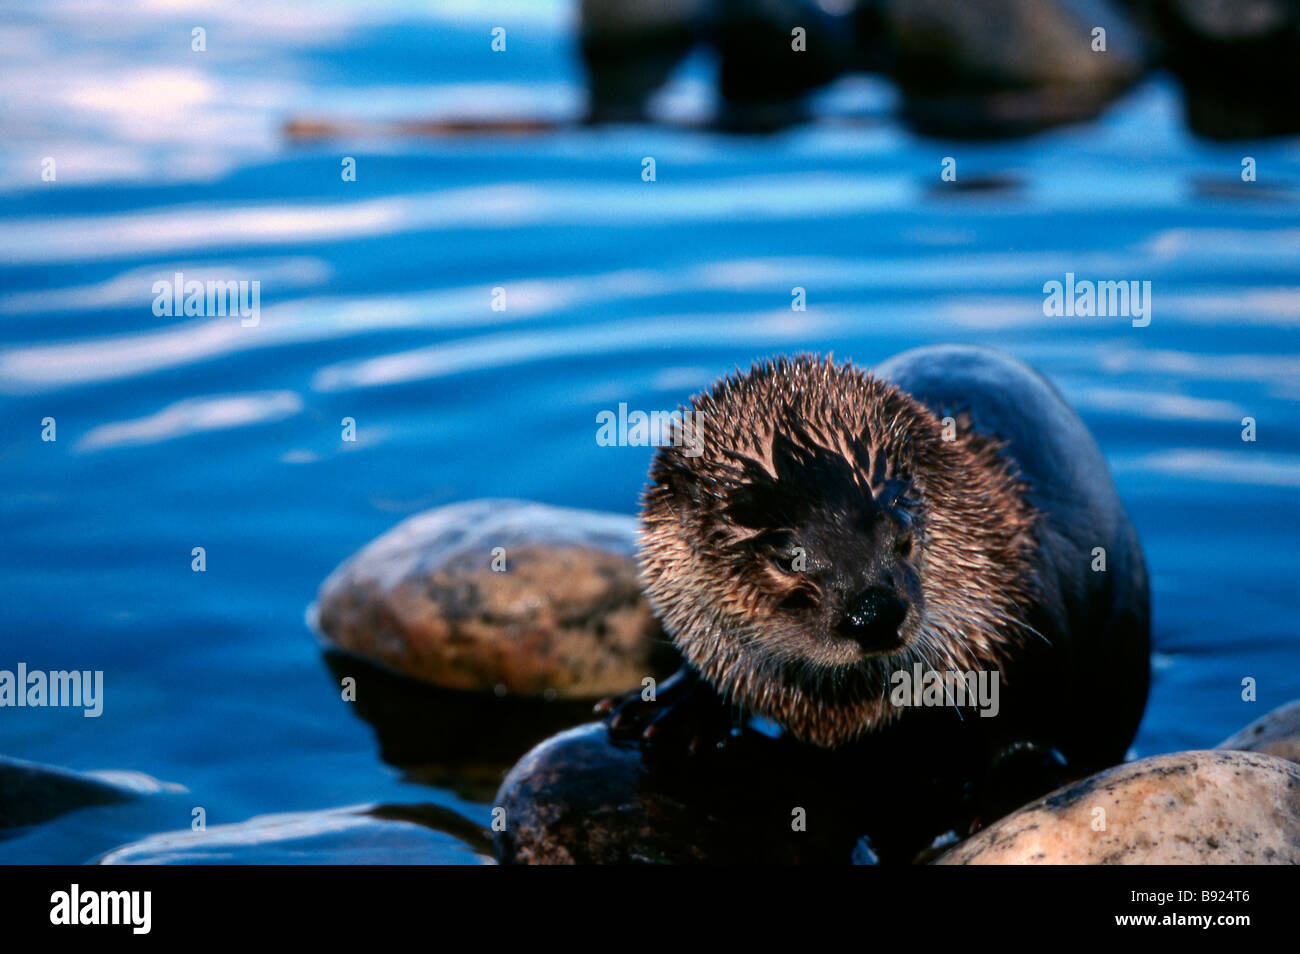 North American River Otter, Lontra canadensis Stock Photo